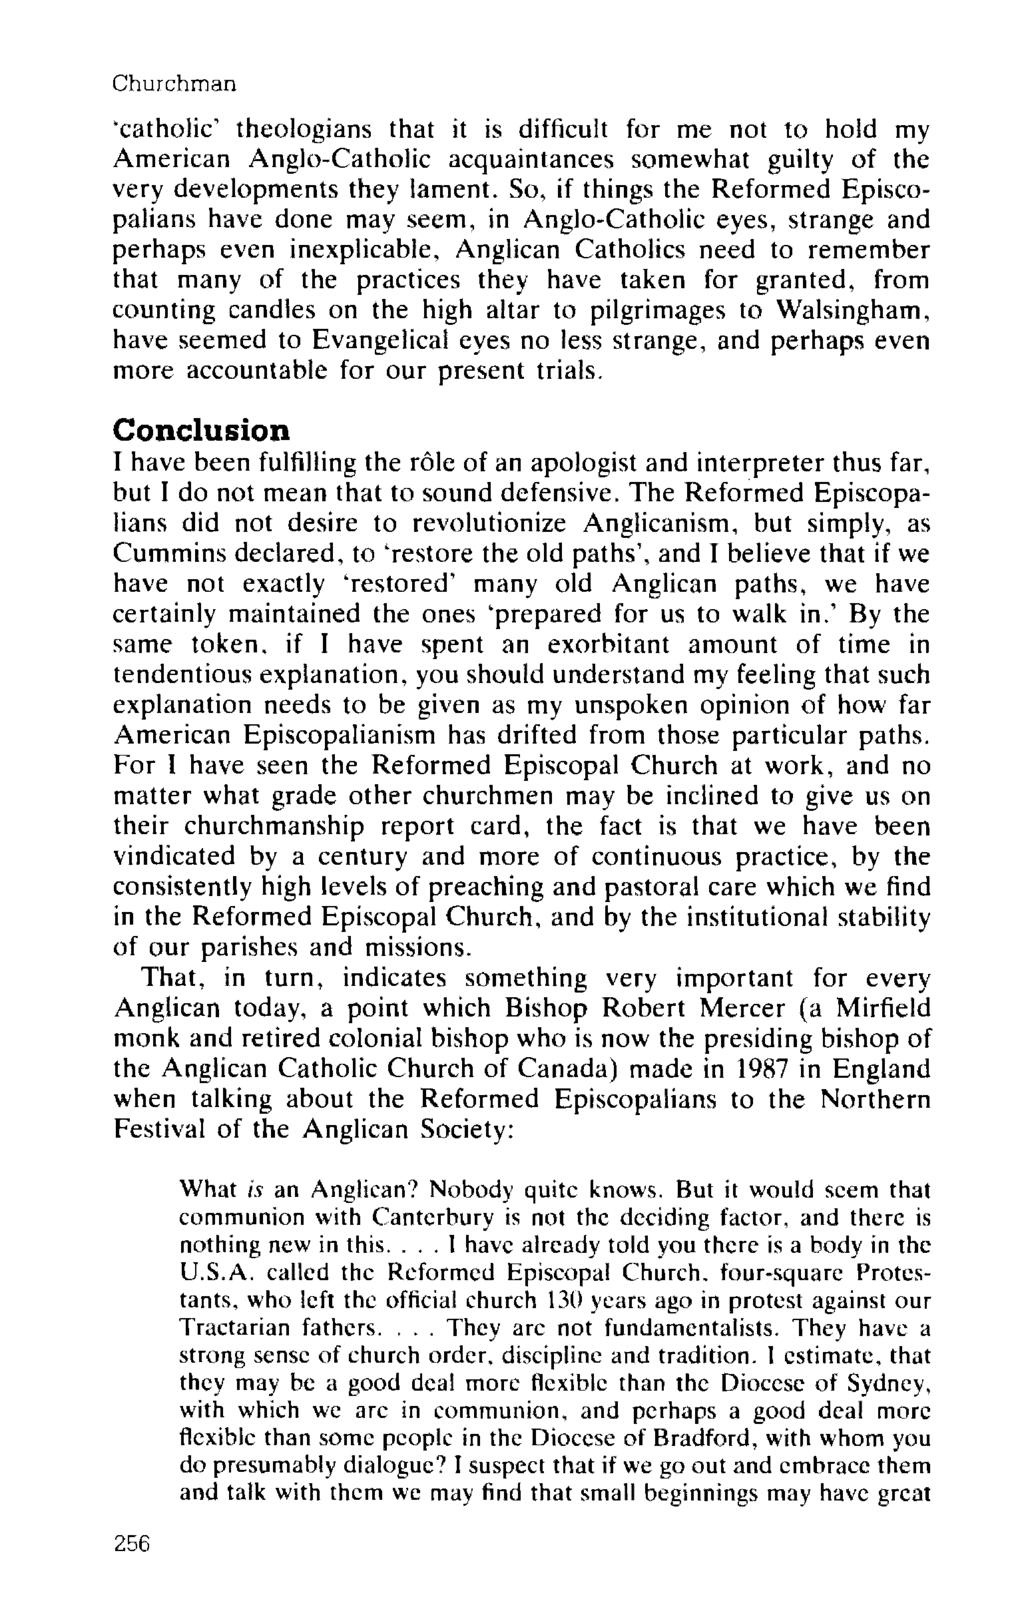 Churchman 'catholic' theologians that it is difficult for me not to hold my American Anglo-Catholic acquaintances somewhat guilty of the very developments they lament.